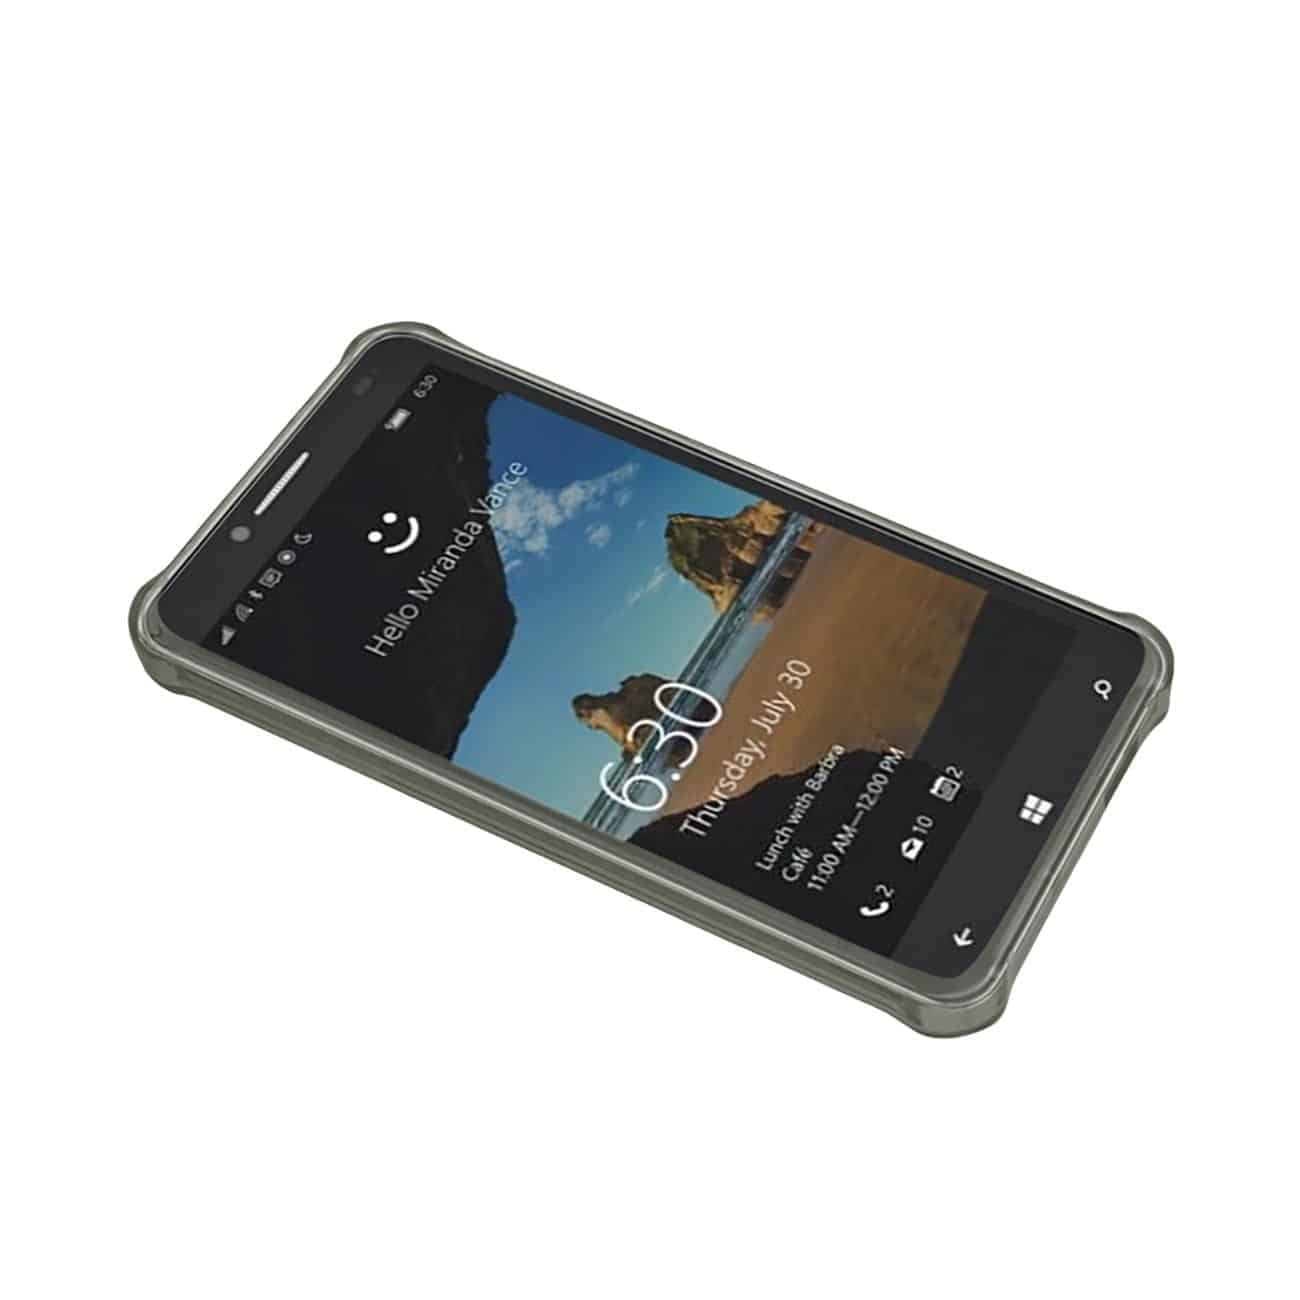 ALCATEL ONE TOUCH FIERCE XL MIRROR EFFECT CASE WITH AIR CUSHION PROTECTION IN CLEAR BLACK